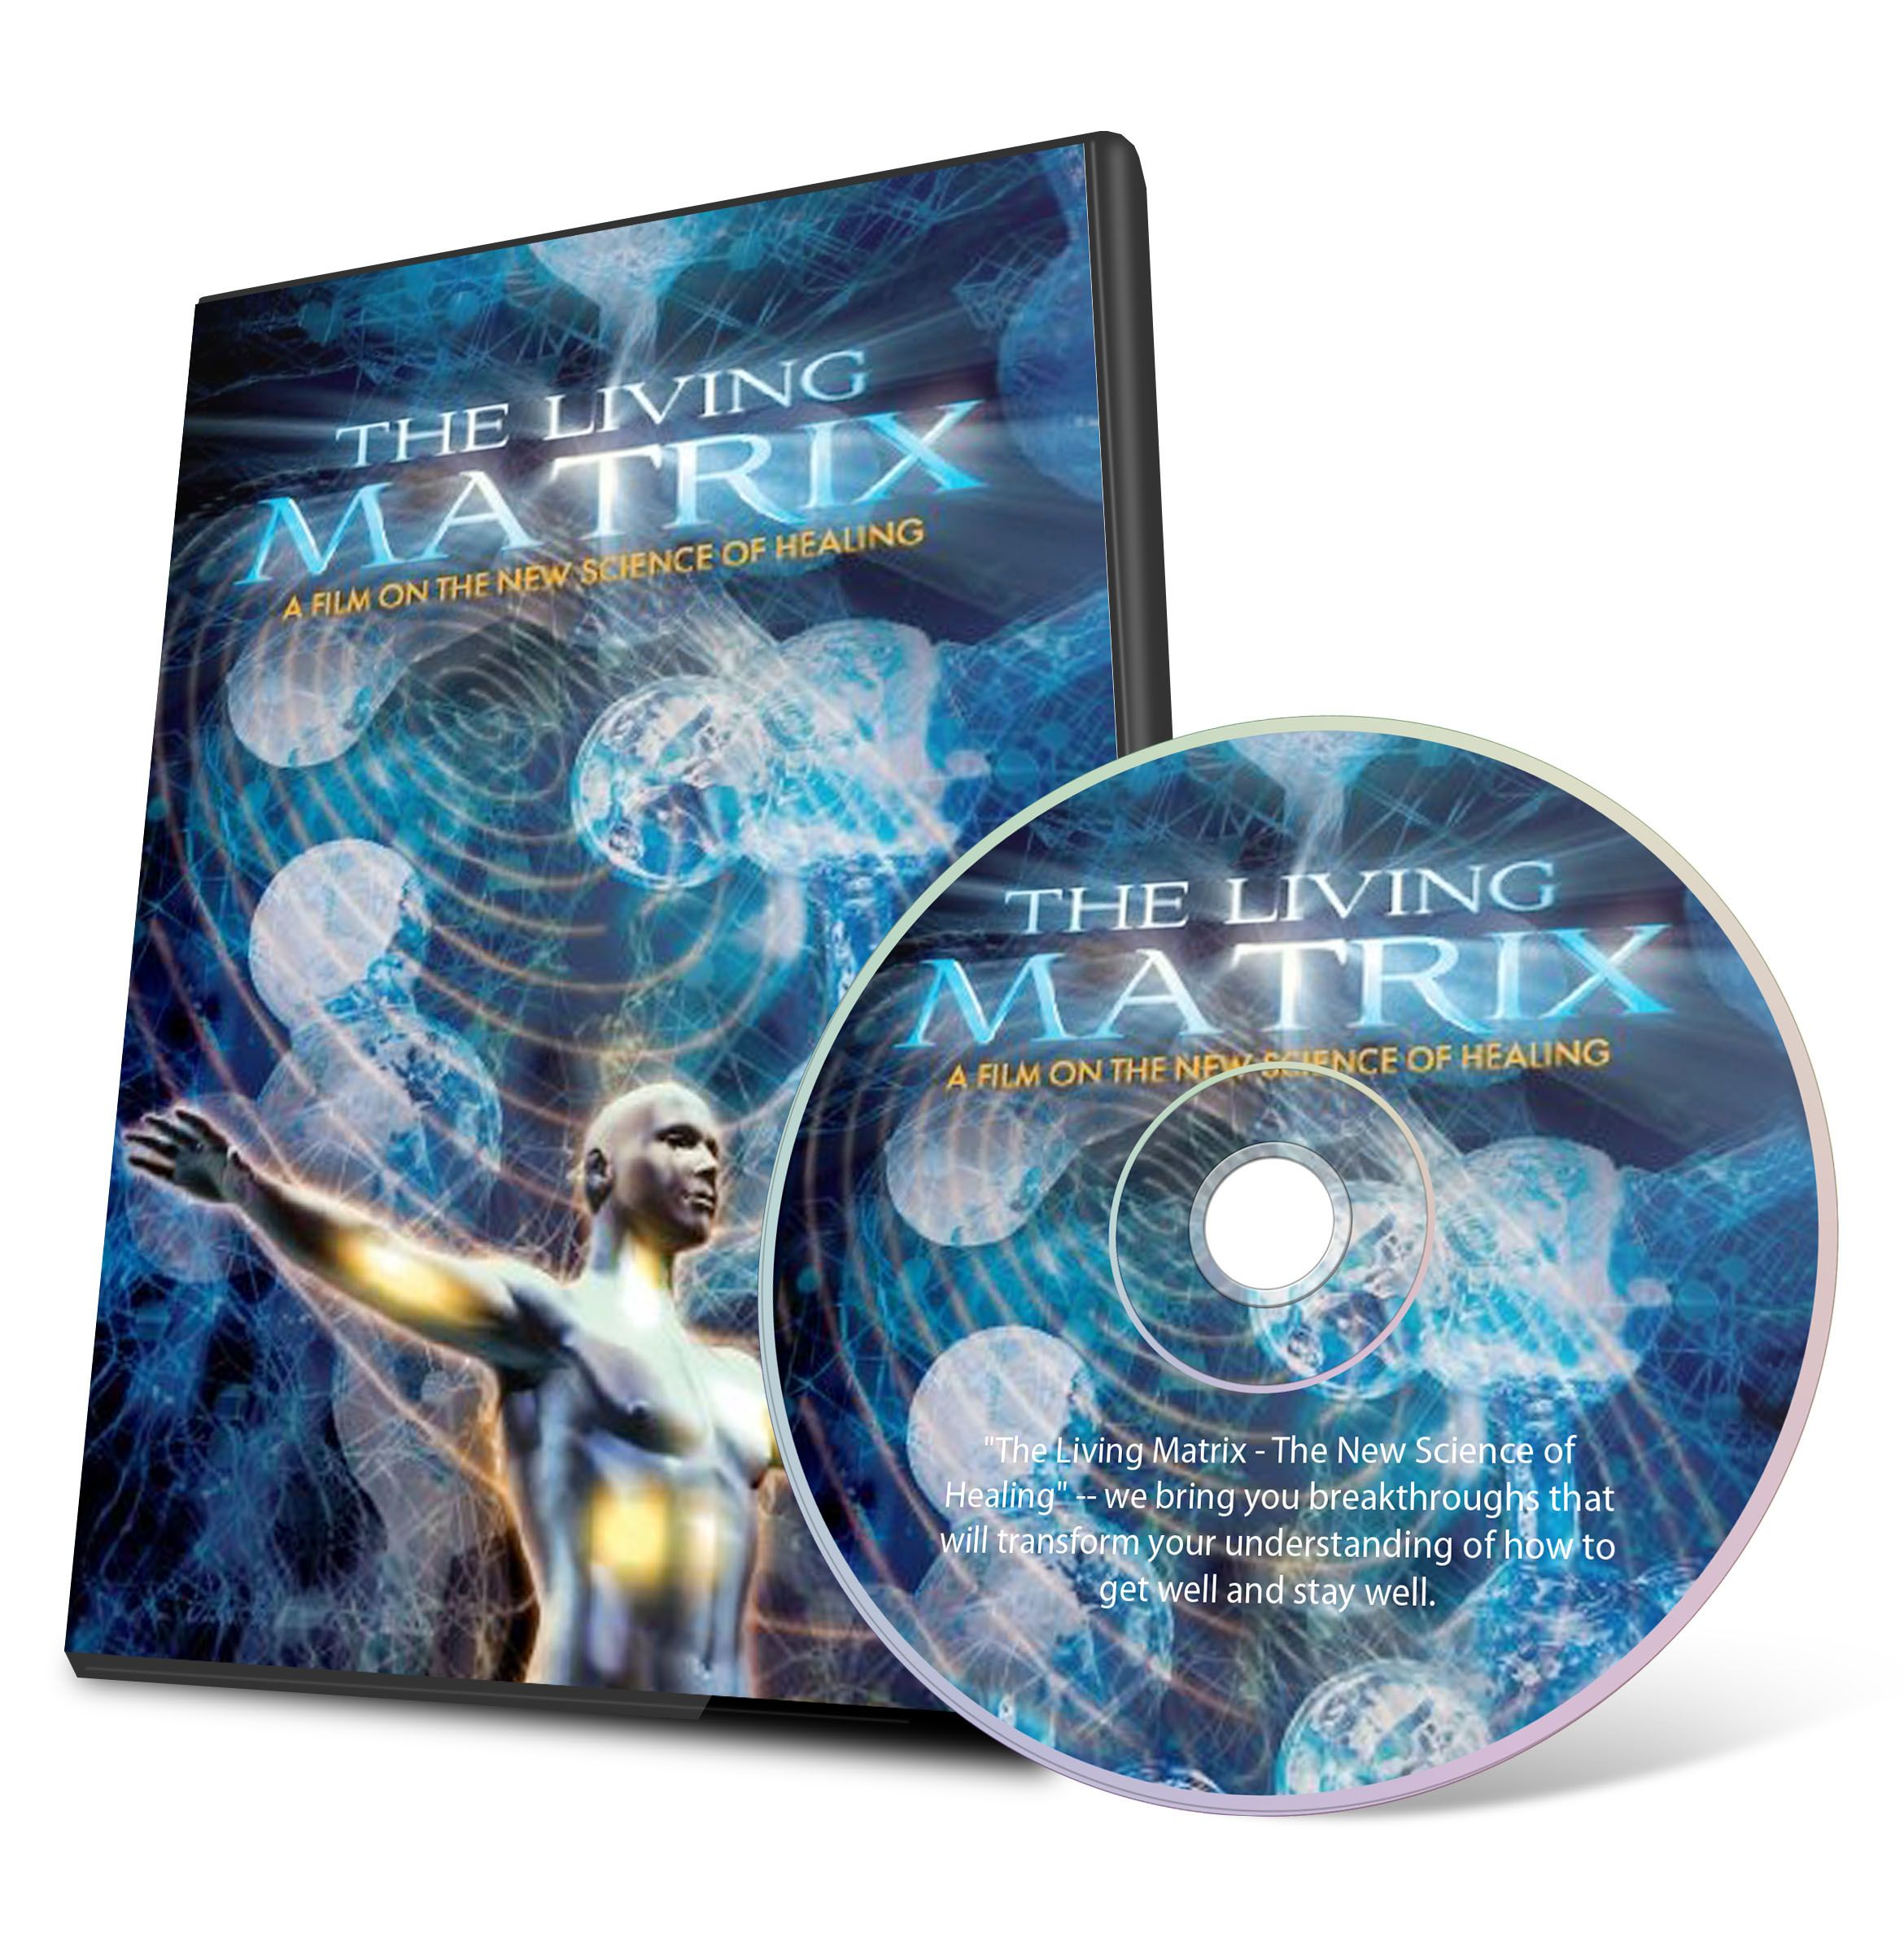 Living Matrix DVD – this film will transform your understanding of how to get well and stay well.